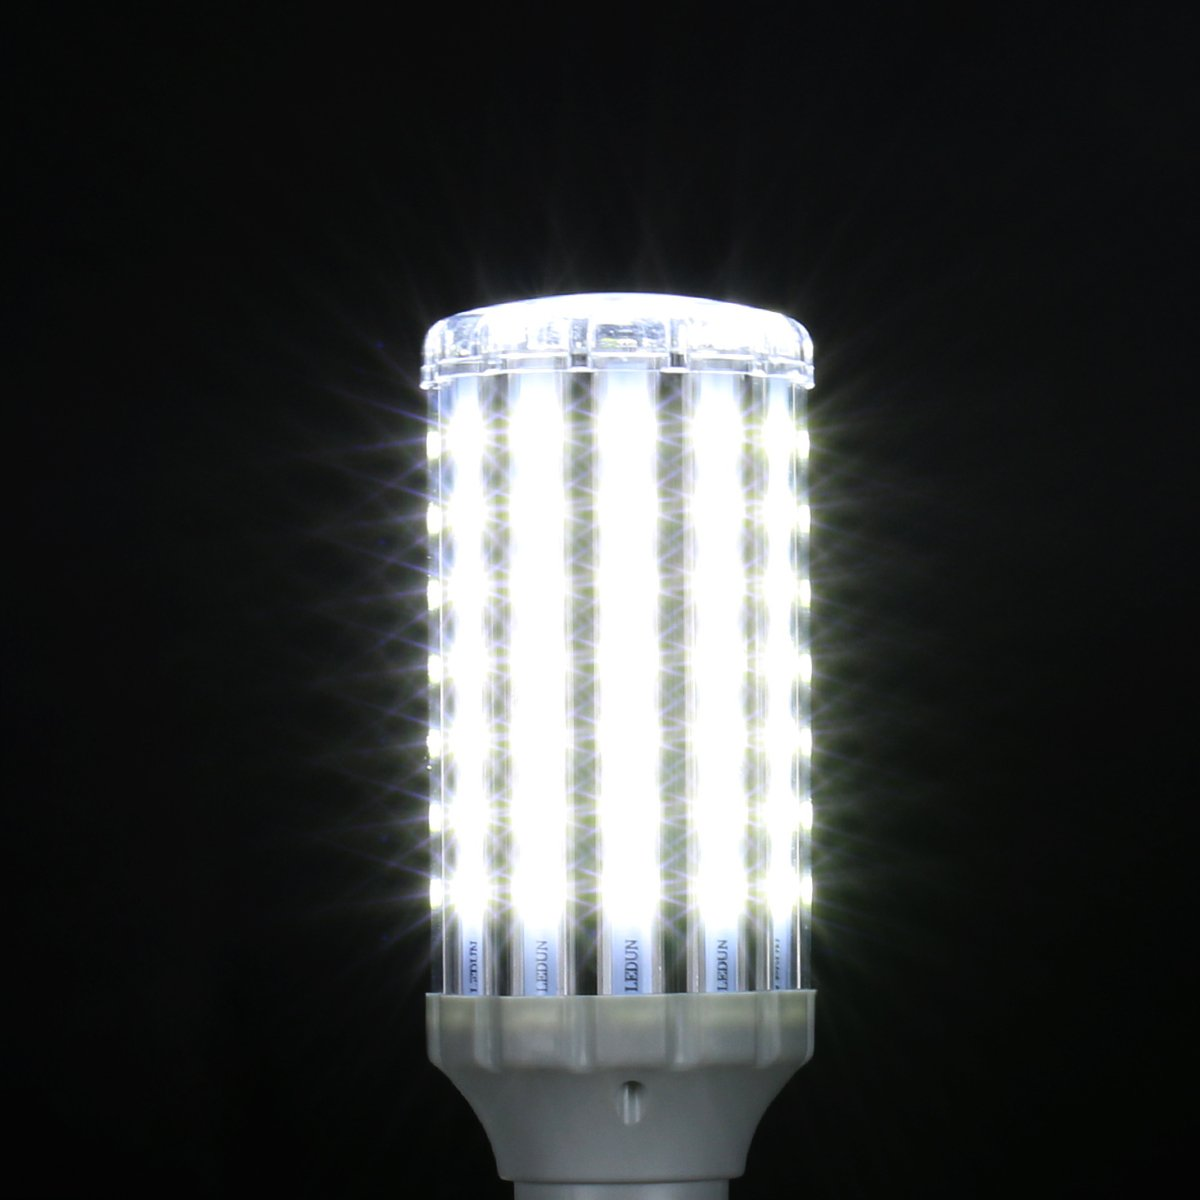 35w daylight led corn light bulb for indoor outdoor large area 35w daylight led corn light bulb for indoor outdoor large area e26 3500lm 6500k cool white for street lamp post lighting garage factory warehouse high